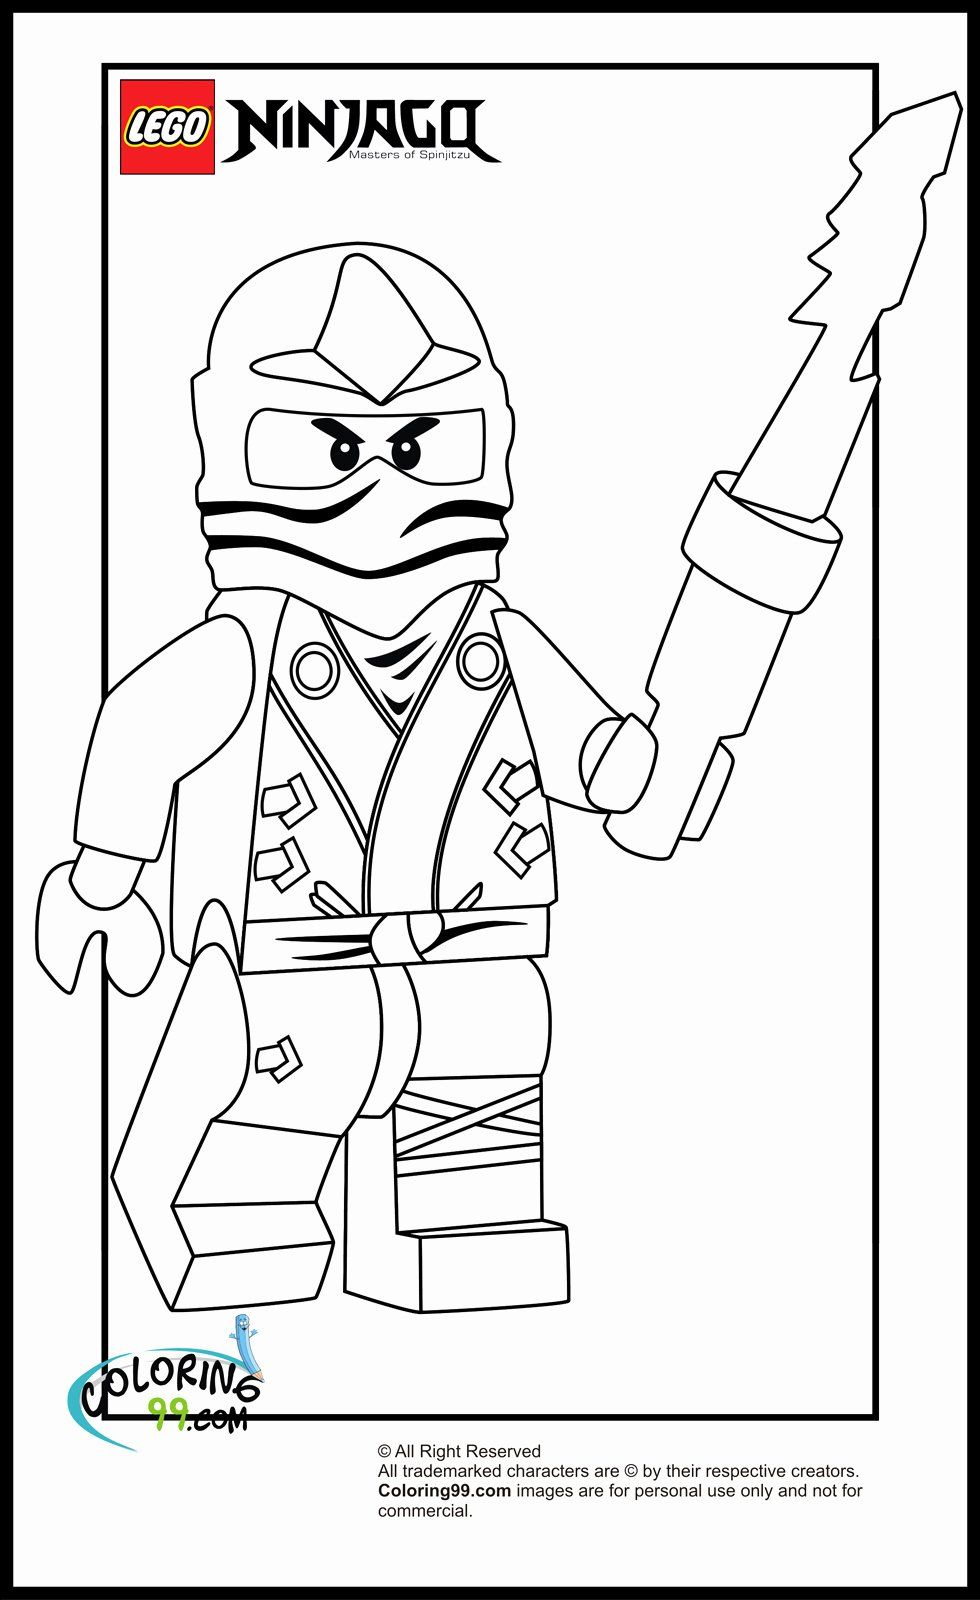 Kai Ninjago Coloring Page Beautiful Lego Ninjago Zane Coloring Pages Superhero Coloring Pages Ninjago Coloring Pages Lego Coloring Pages